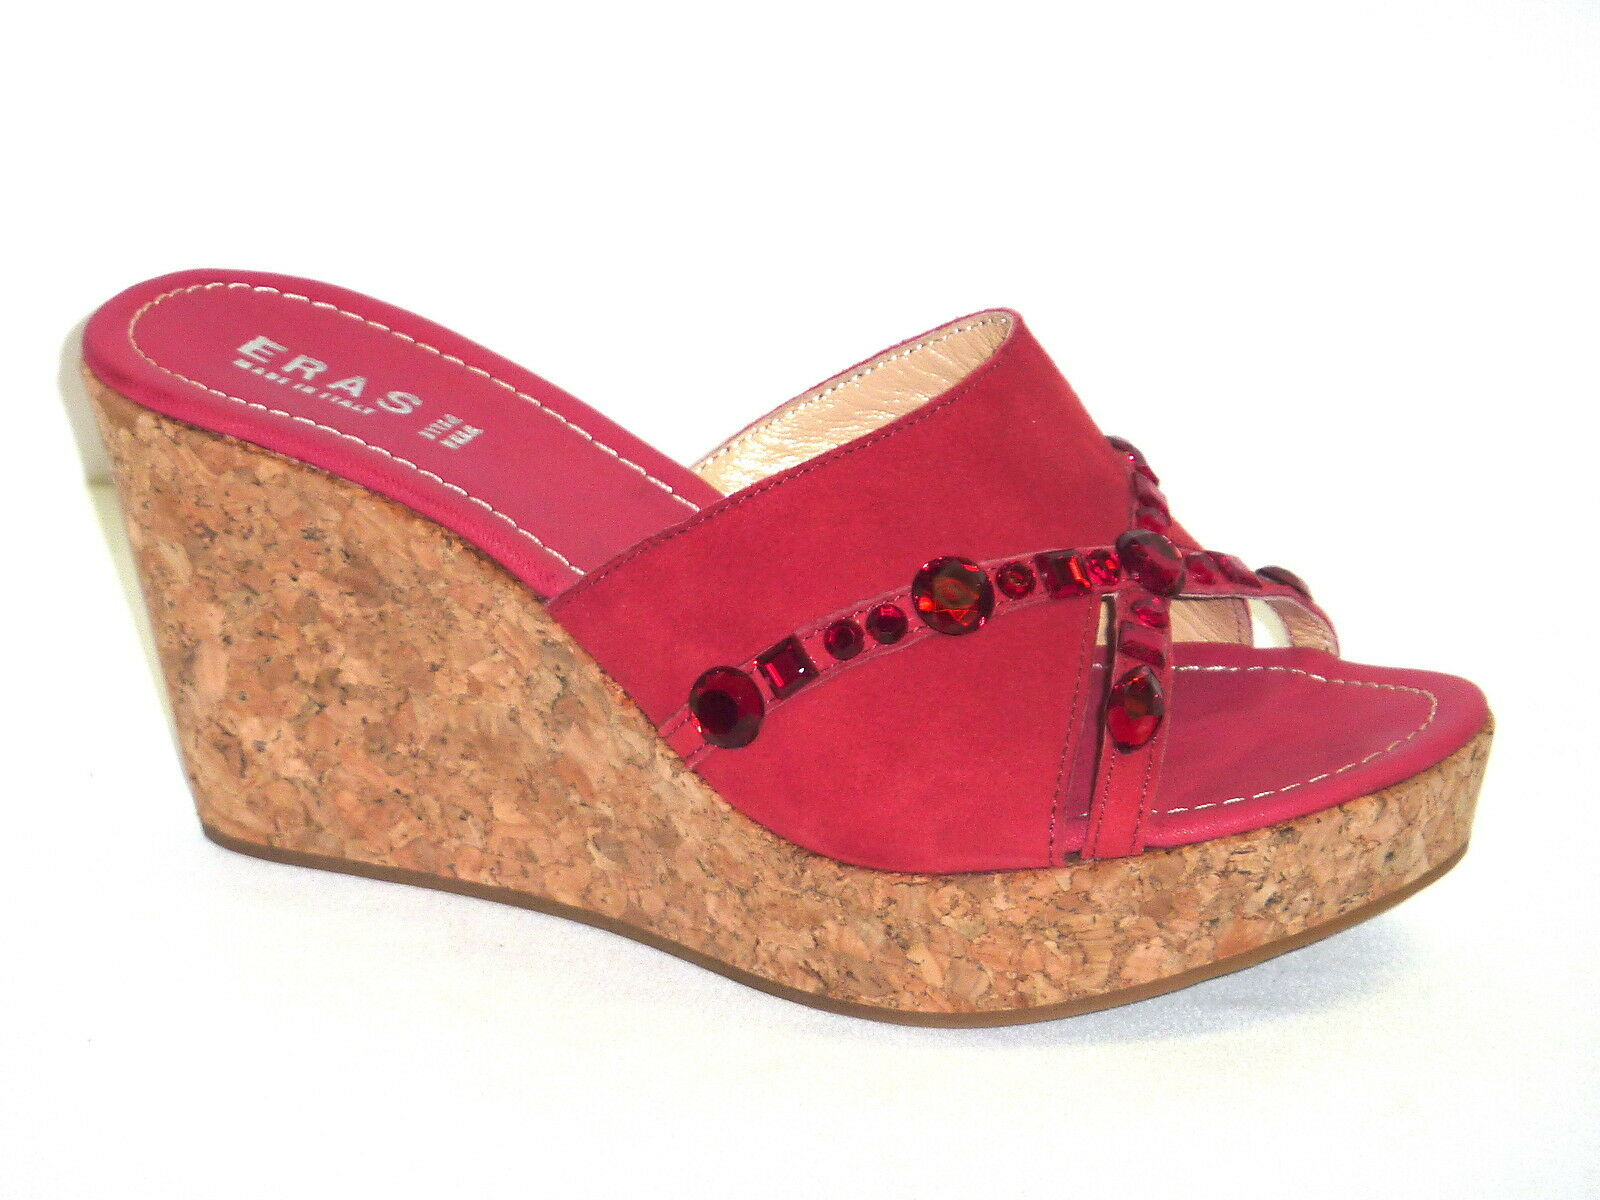 833 ZEPPE SANDALI DONNA ROSSO FONDO SUGHERO PELLE NABUK ROSSO DONNA Made in Italy n. 40 ee1480